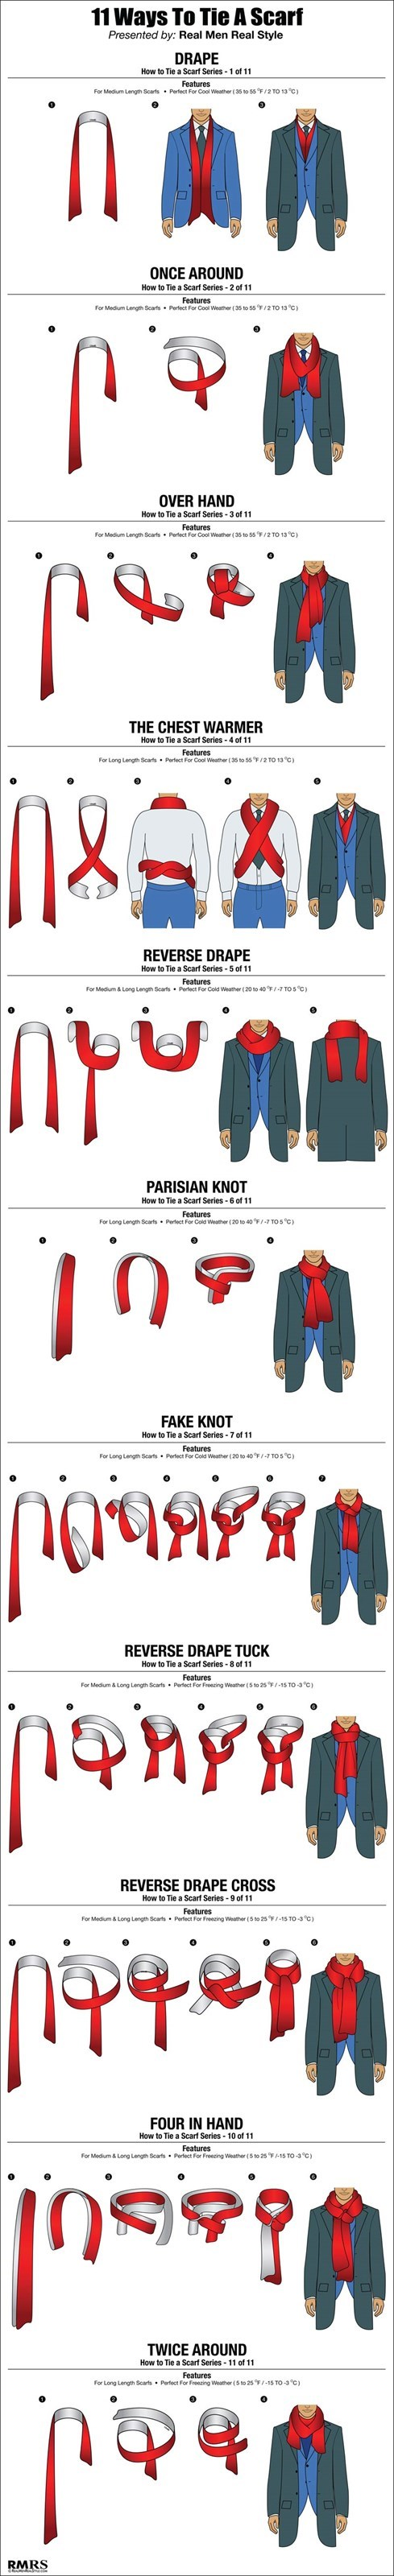 Be Warm and Fashionable with These Scarf Knots